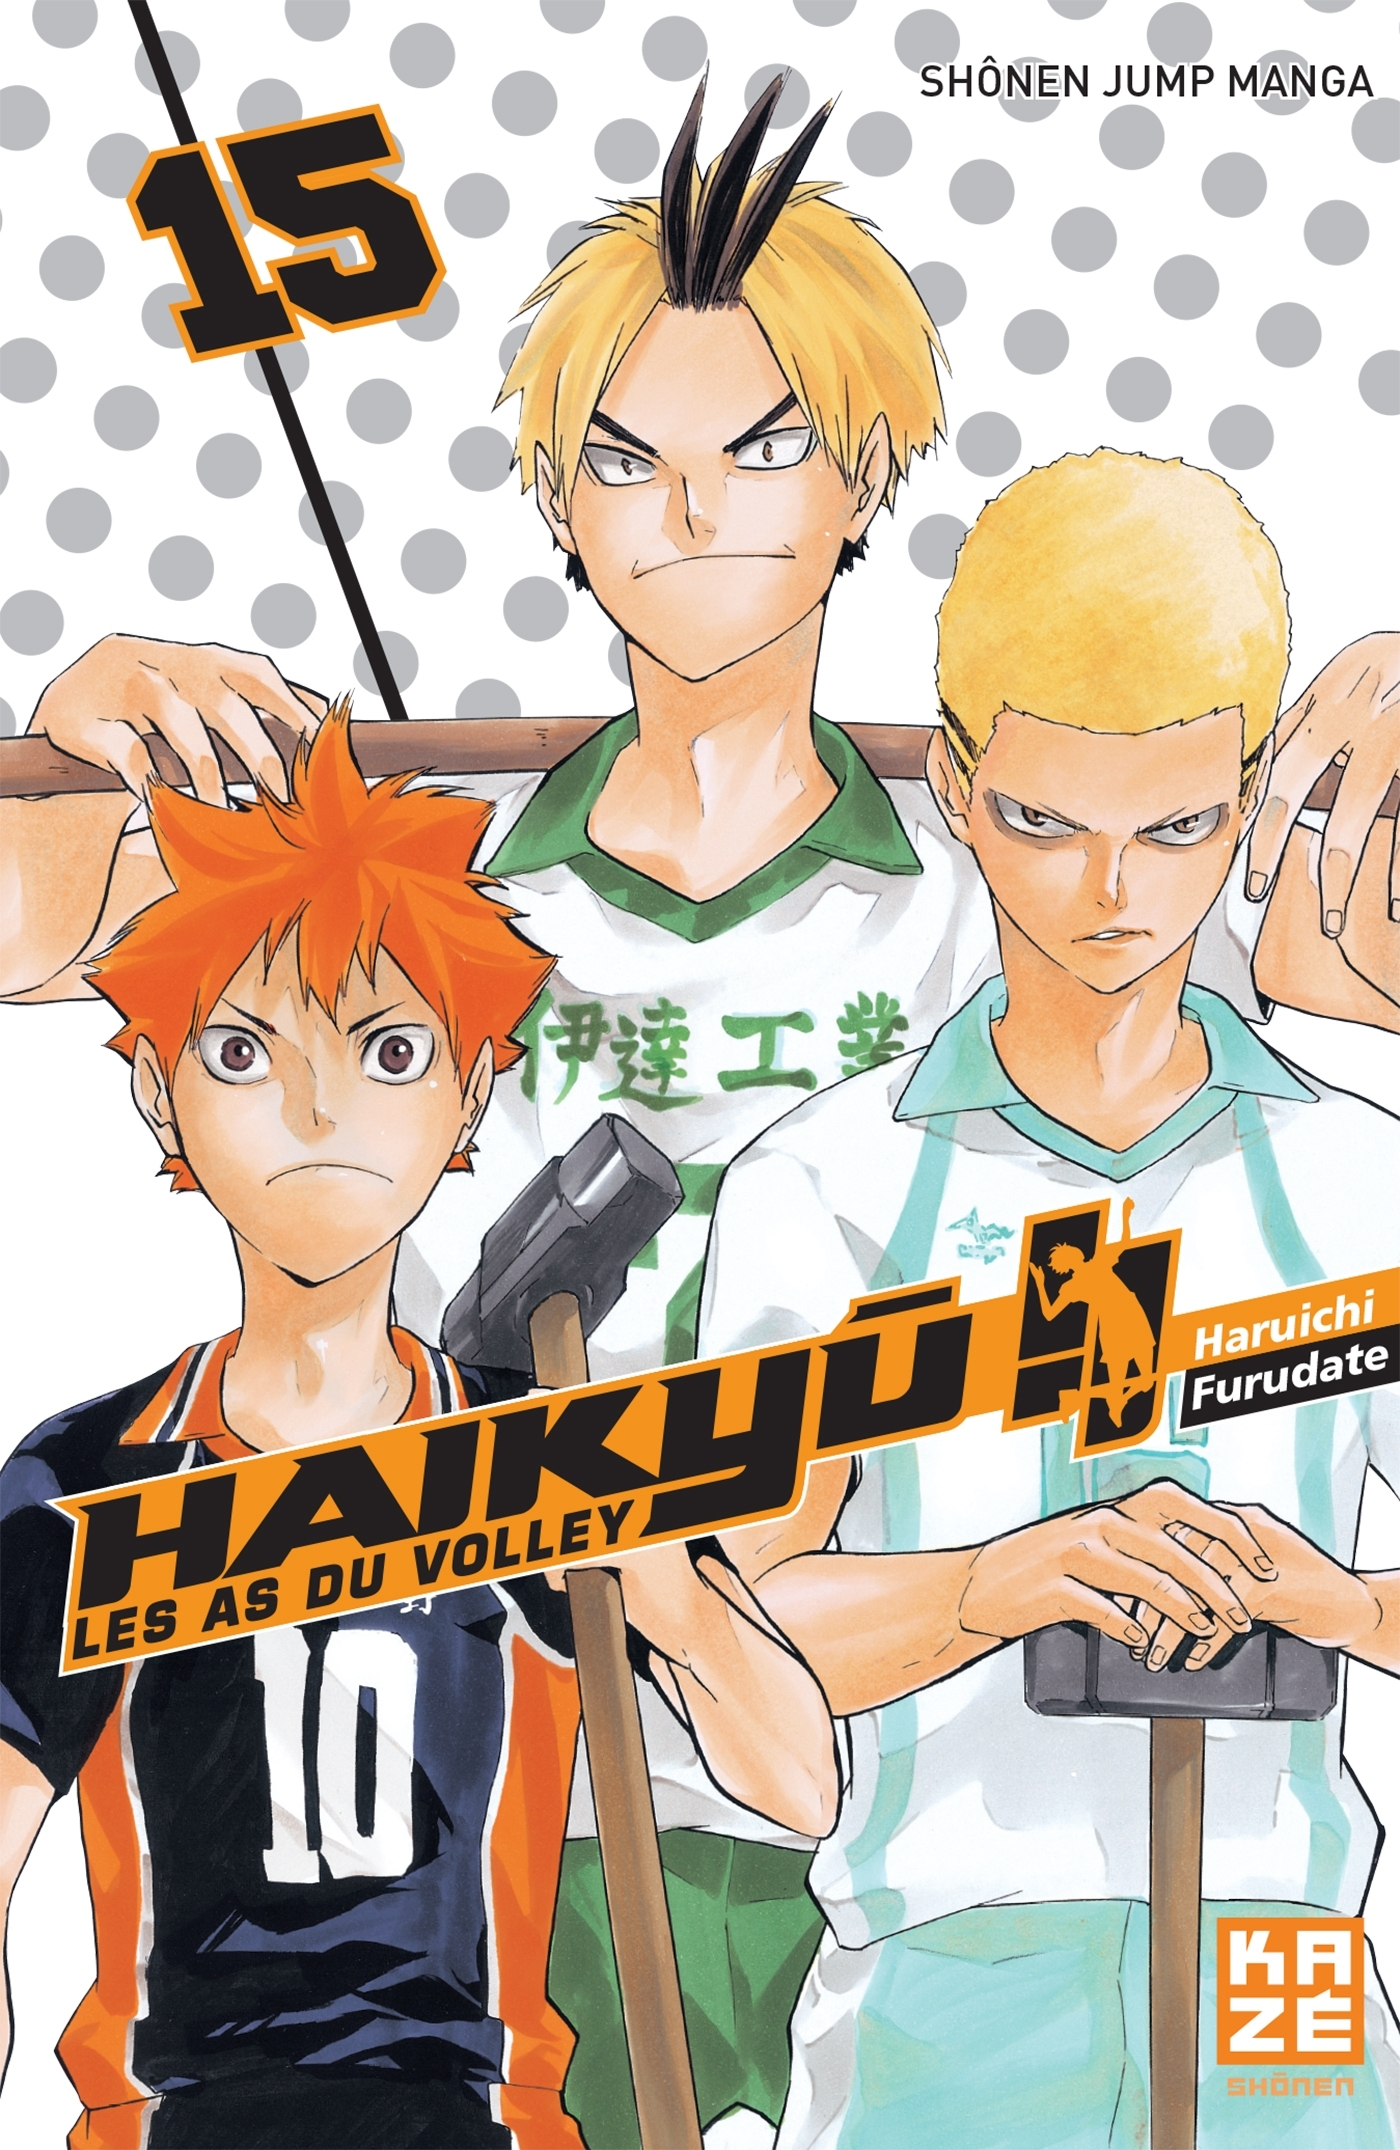 HAIKYU !! - LES AS DU VOLLEY T15